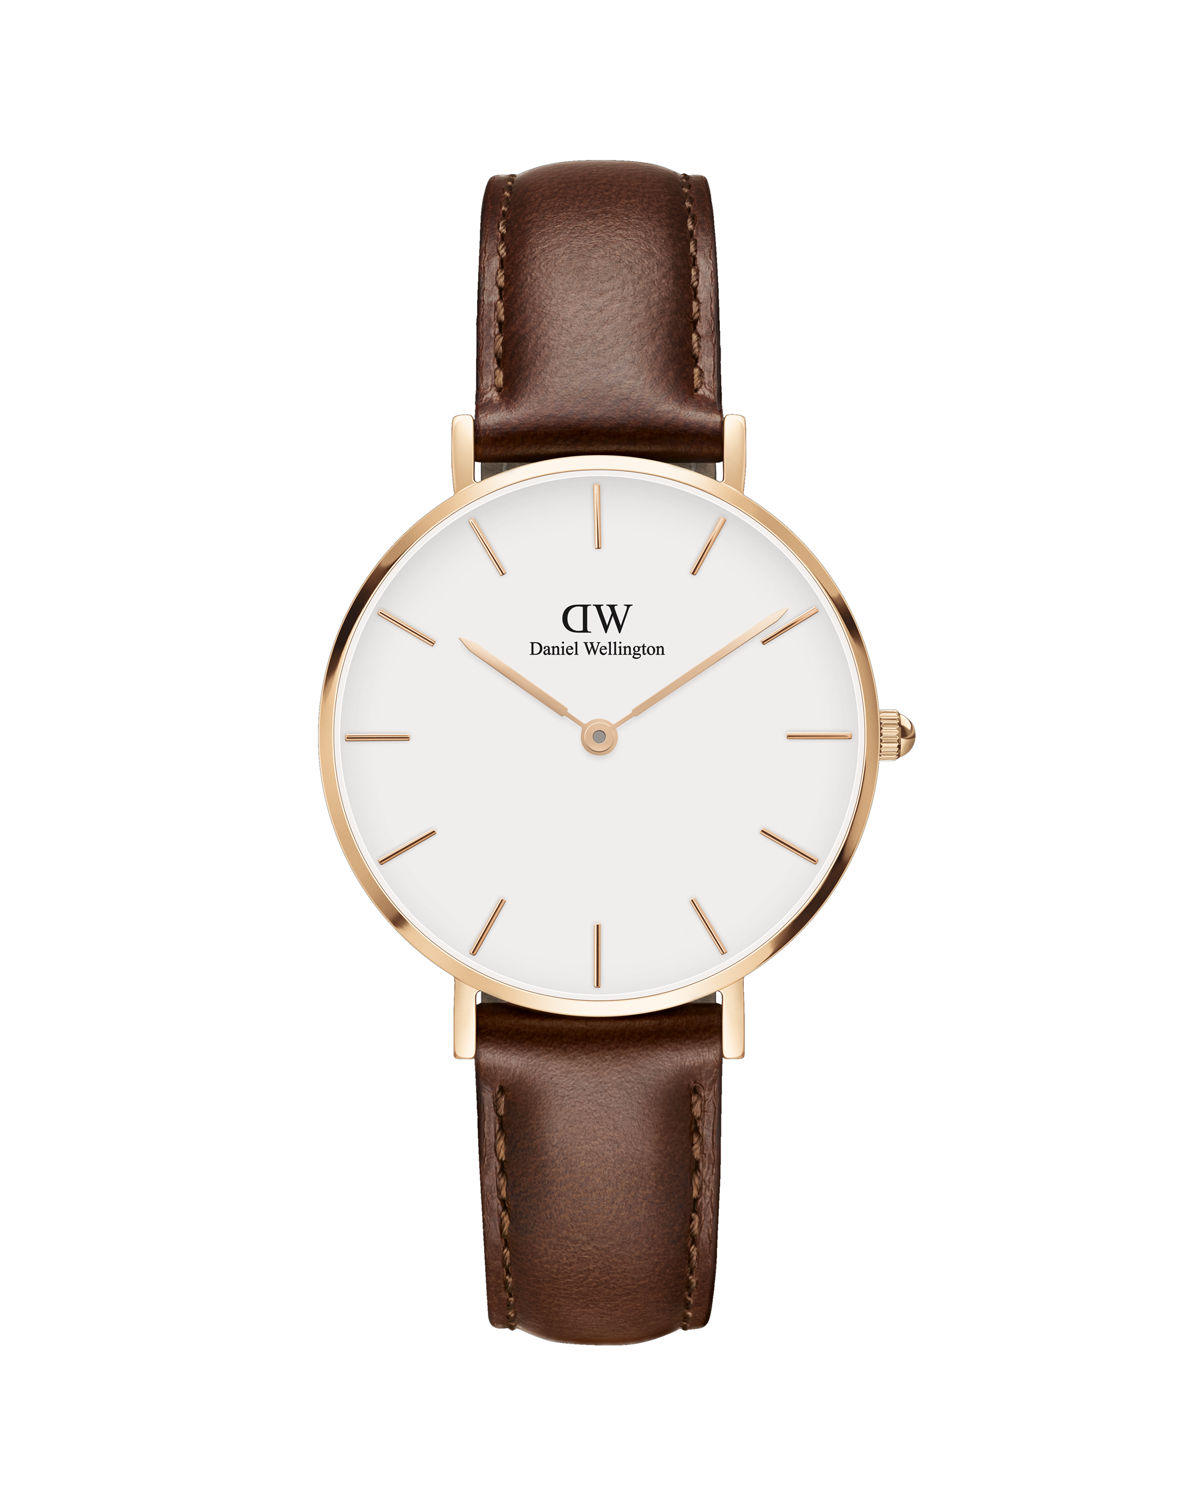 32mm Classic Petite St Mawes Watch